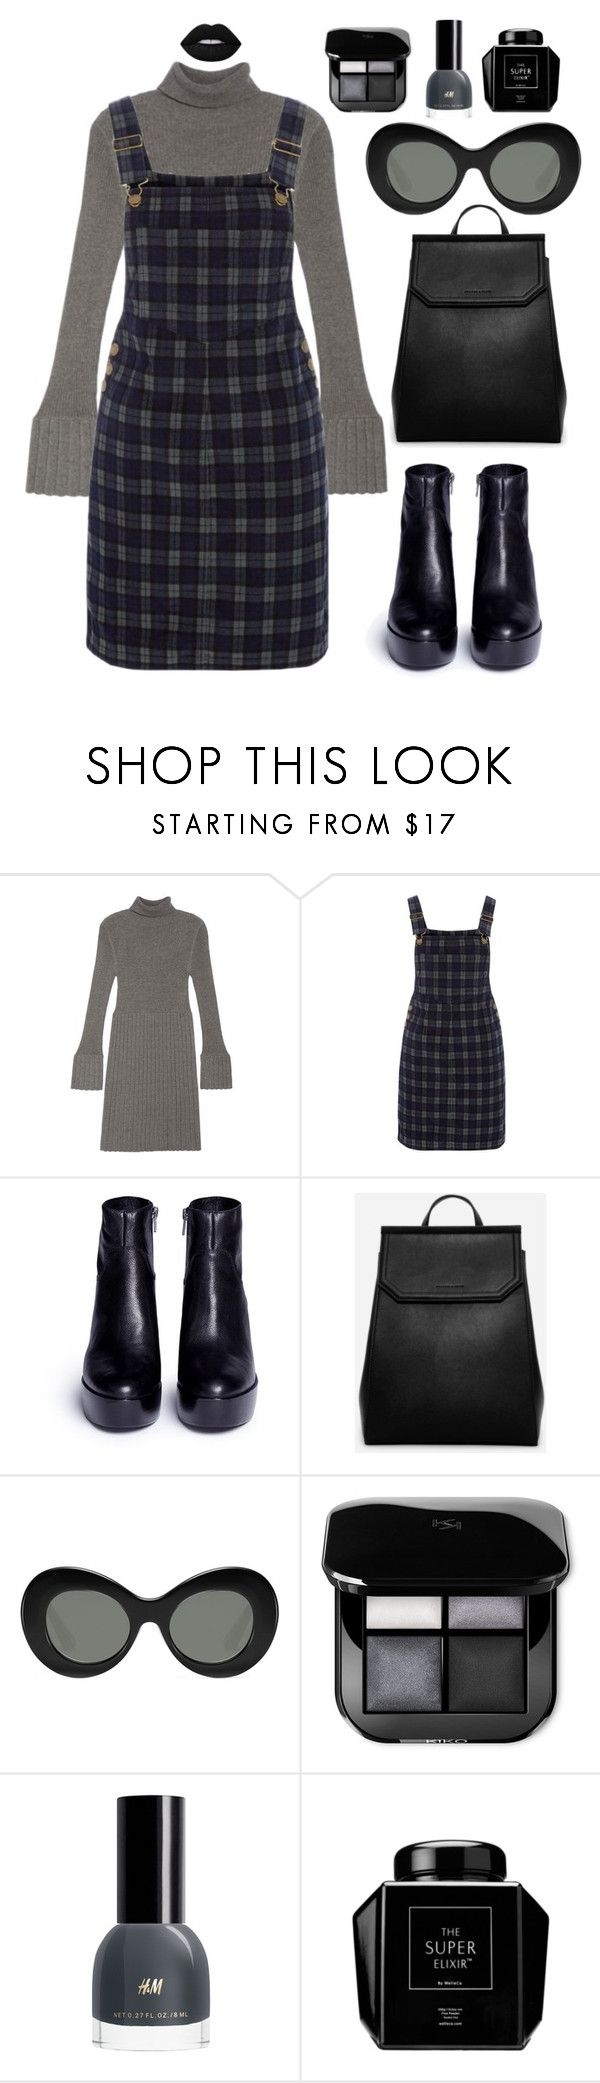 """""""hitam"""" by bilbil ❤ liked on Polyvore featuring Adrianna Papell, Red Herring, Ash, CHARLES & KEITH and Elizabeth and James"""